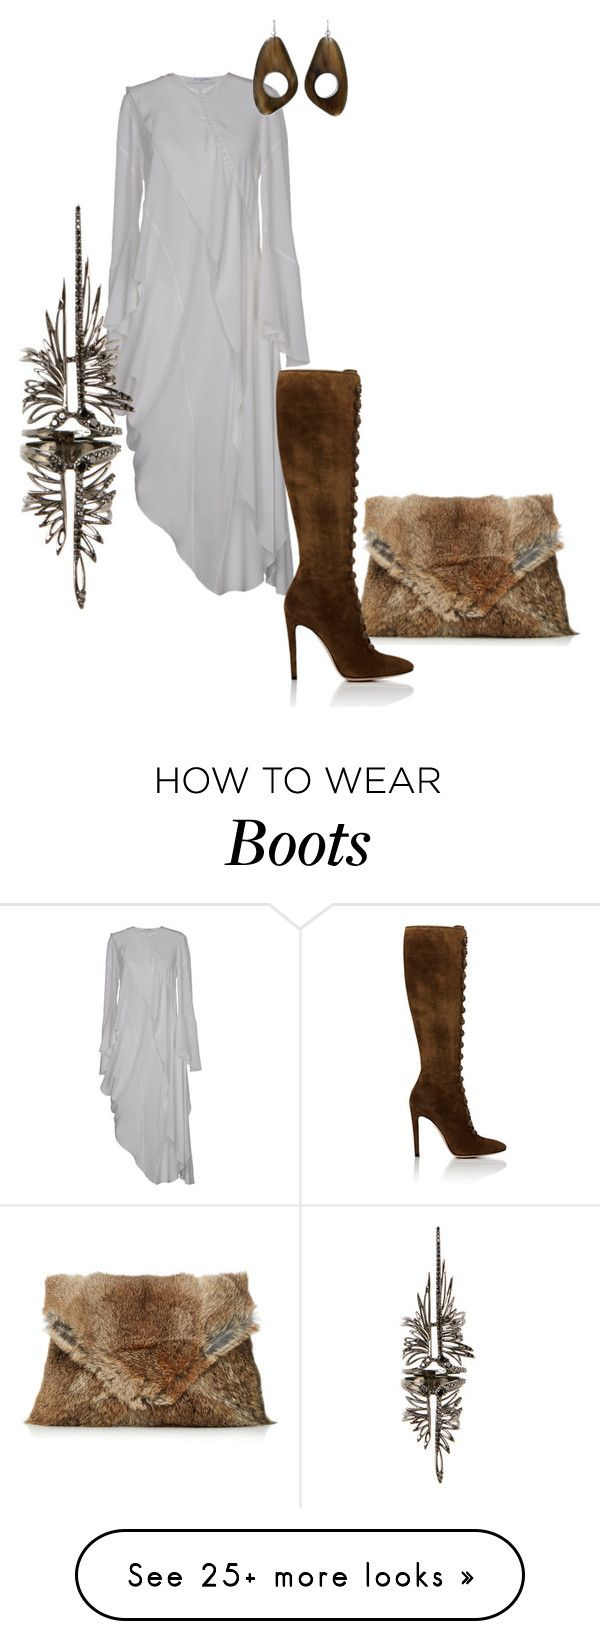 """Untitled #504"" by amy-hille on Polyvore featuring Marni, Givenchy, Gianvito Rossi and Cristina Ortiz"